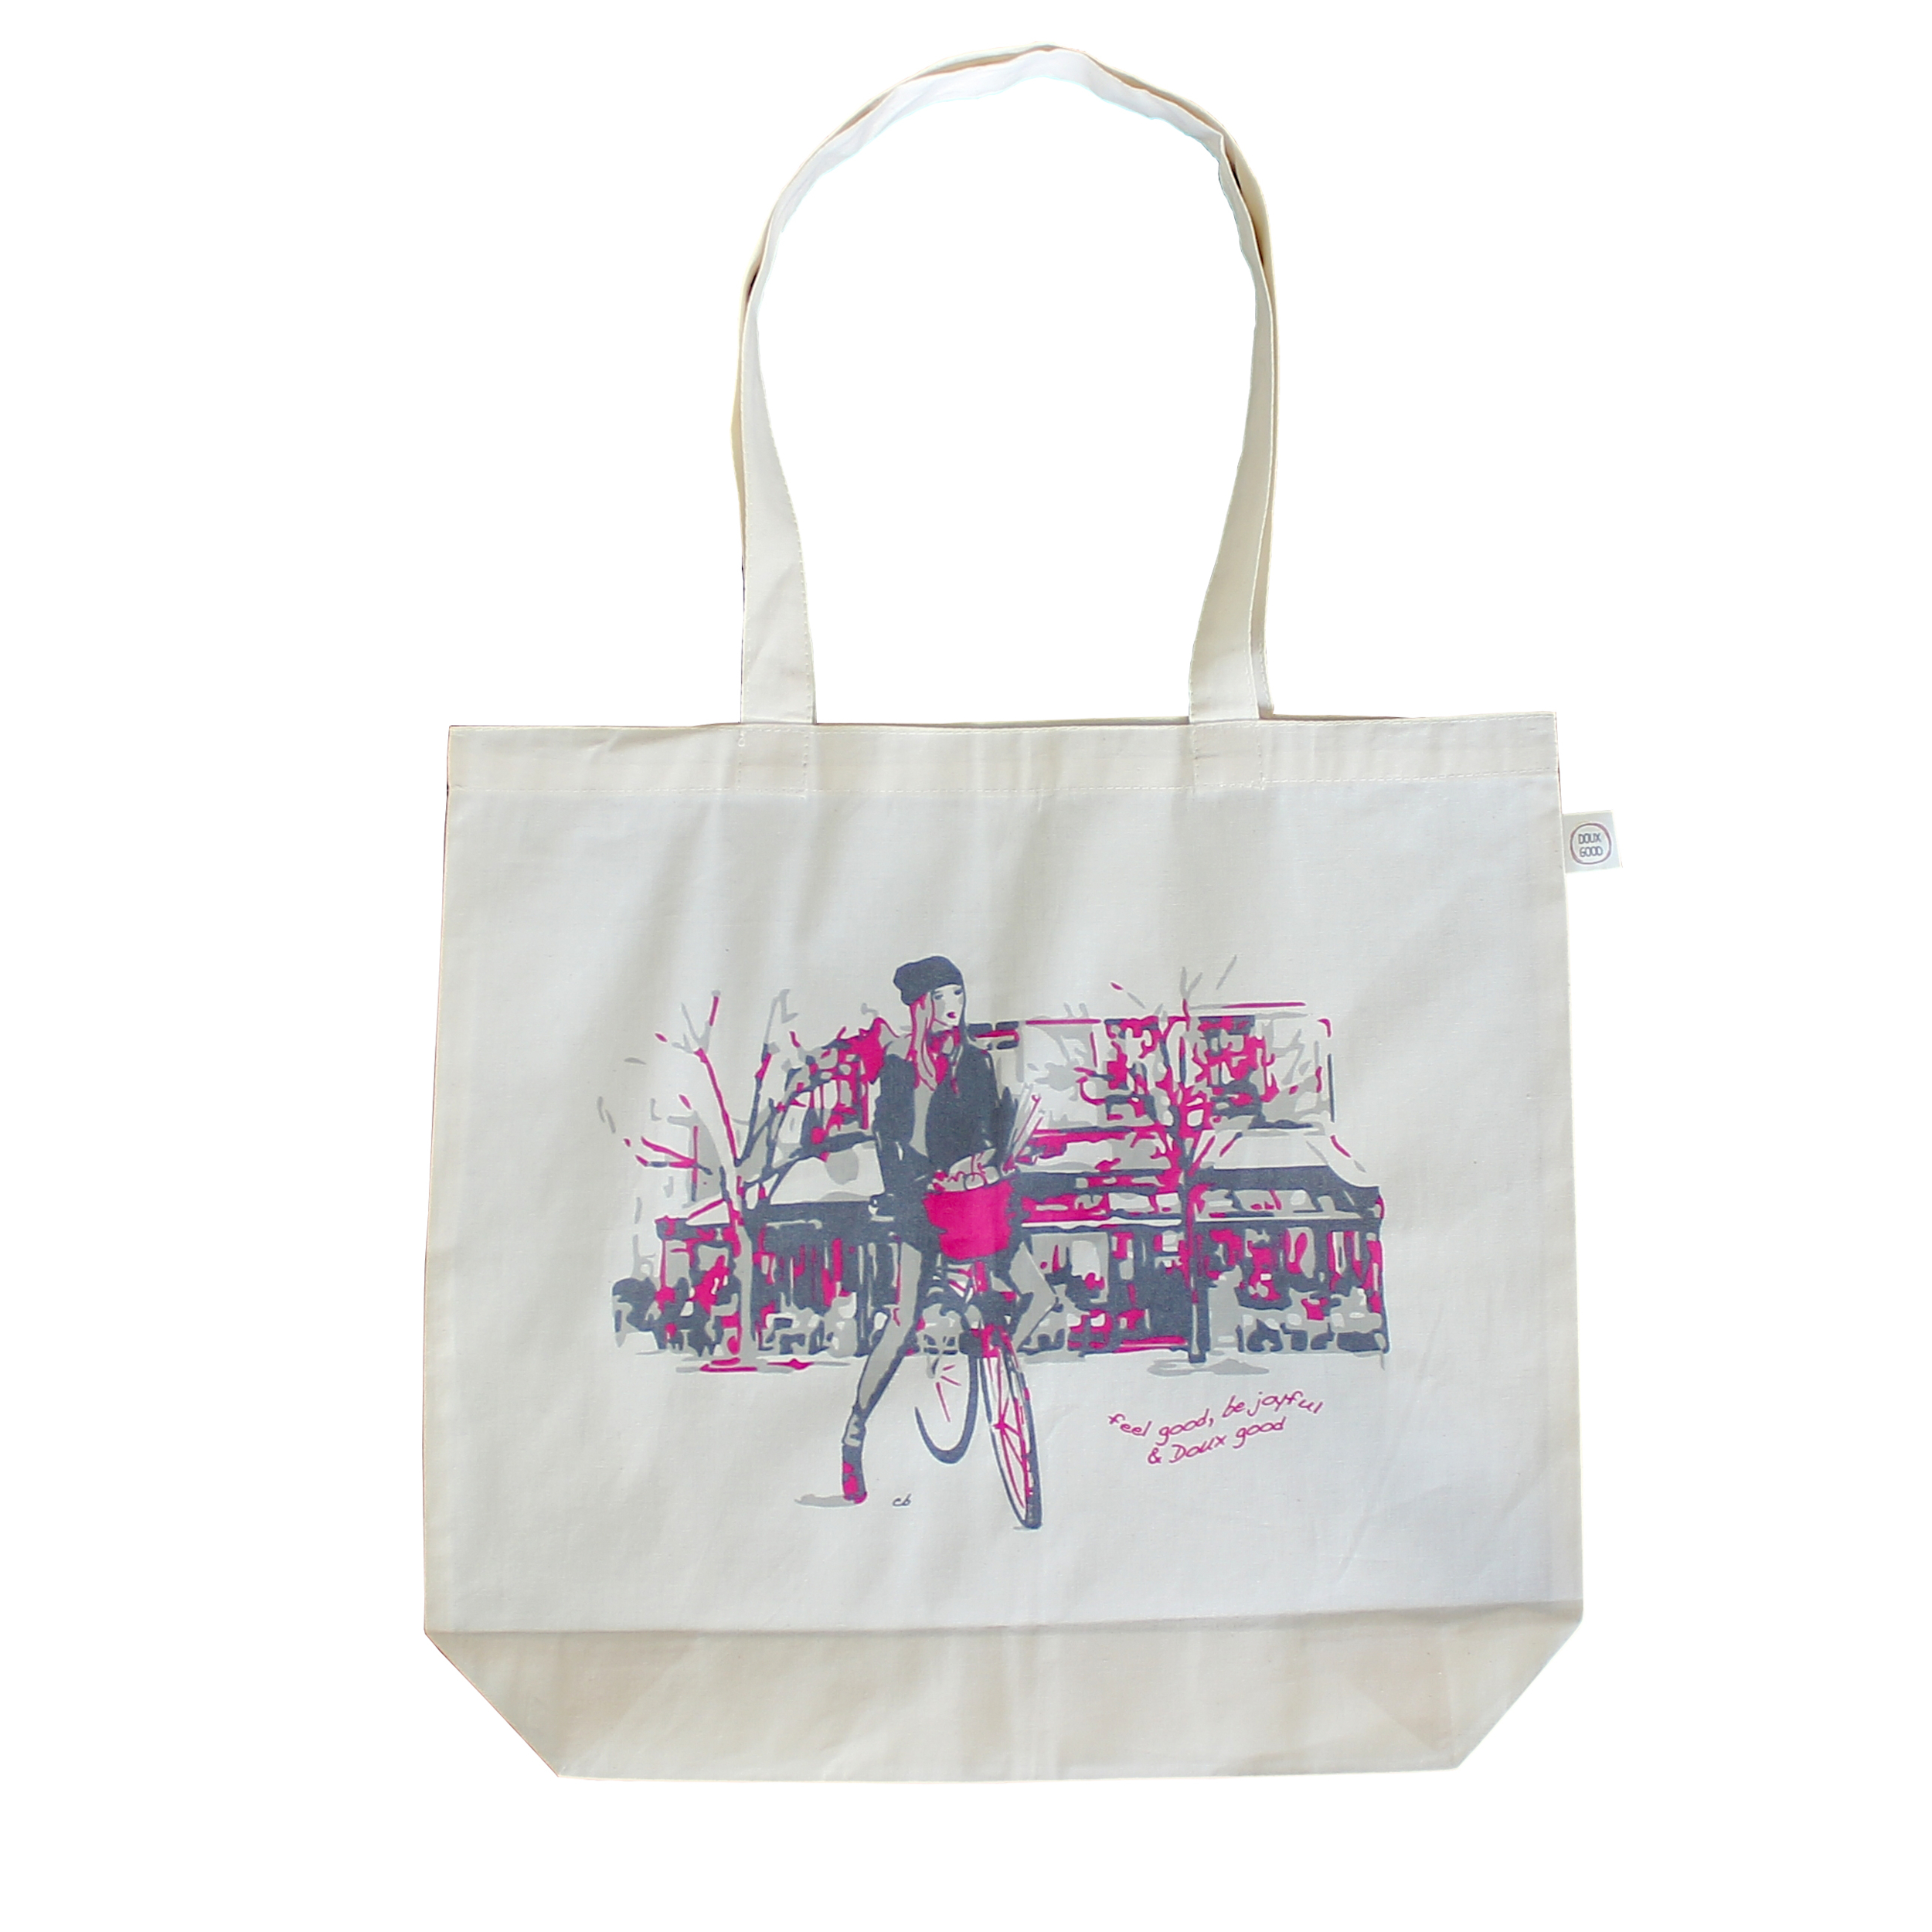 Doux-Good - Tote-bag 2 ans